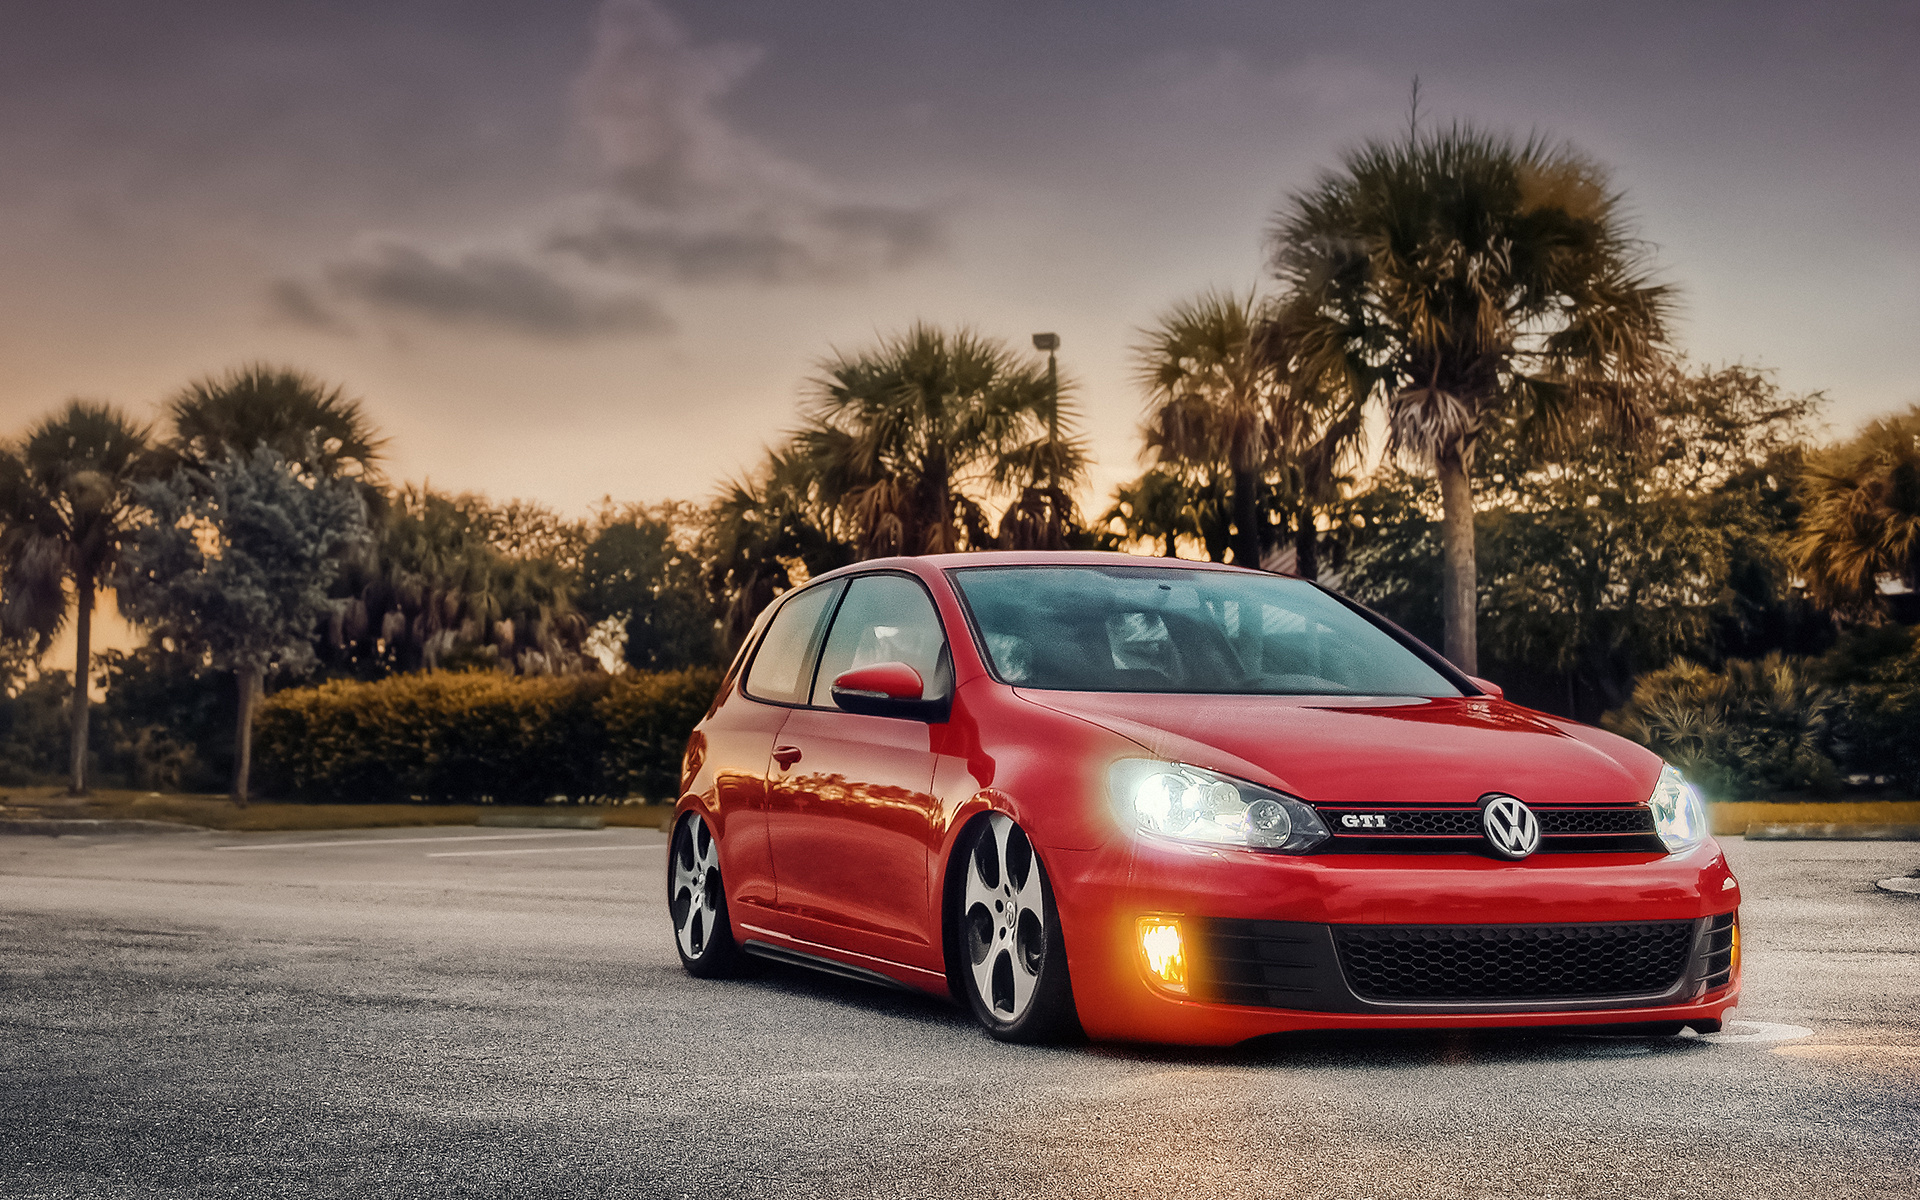 Red Gti Wallpaper